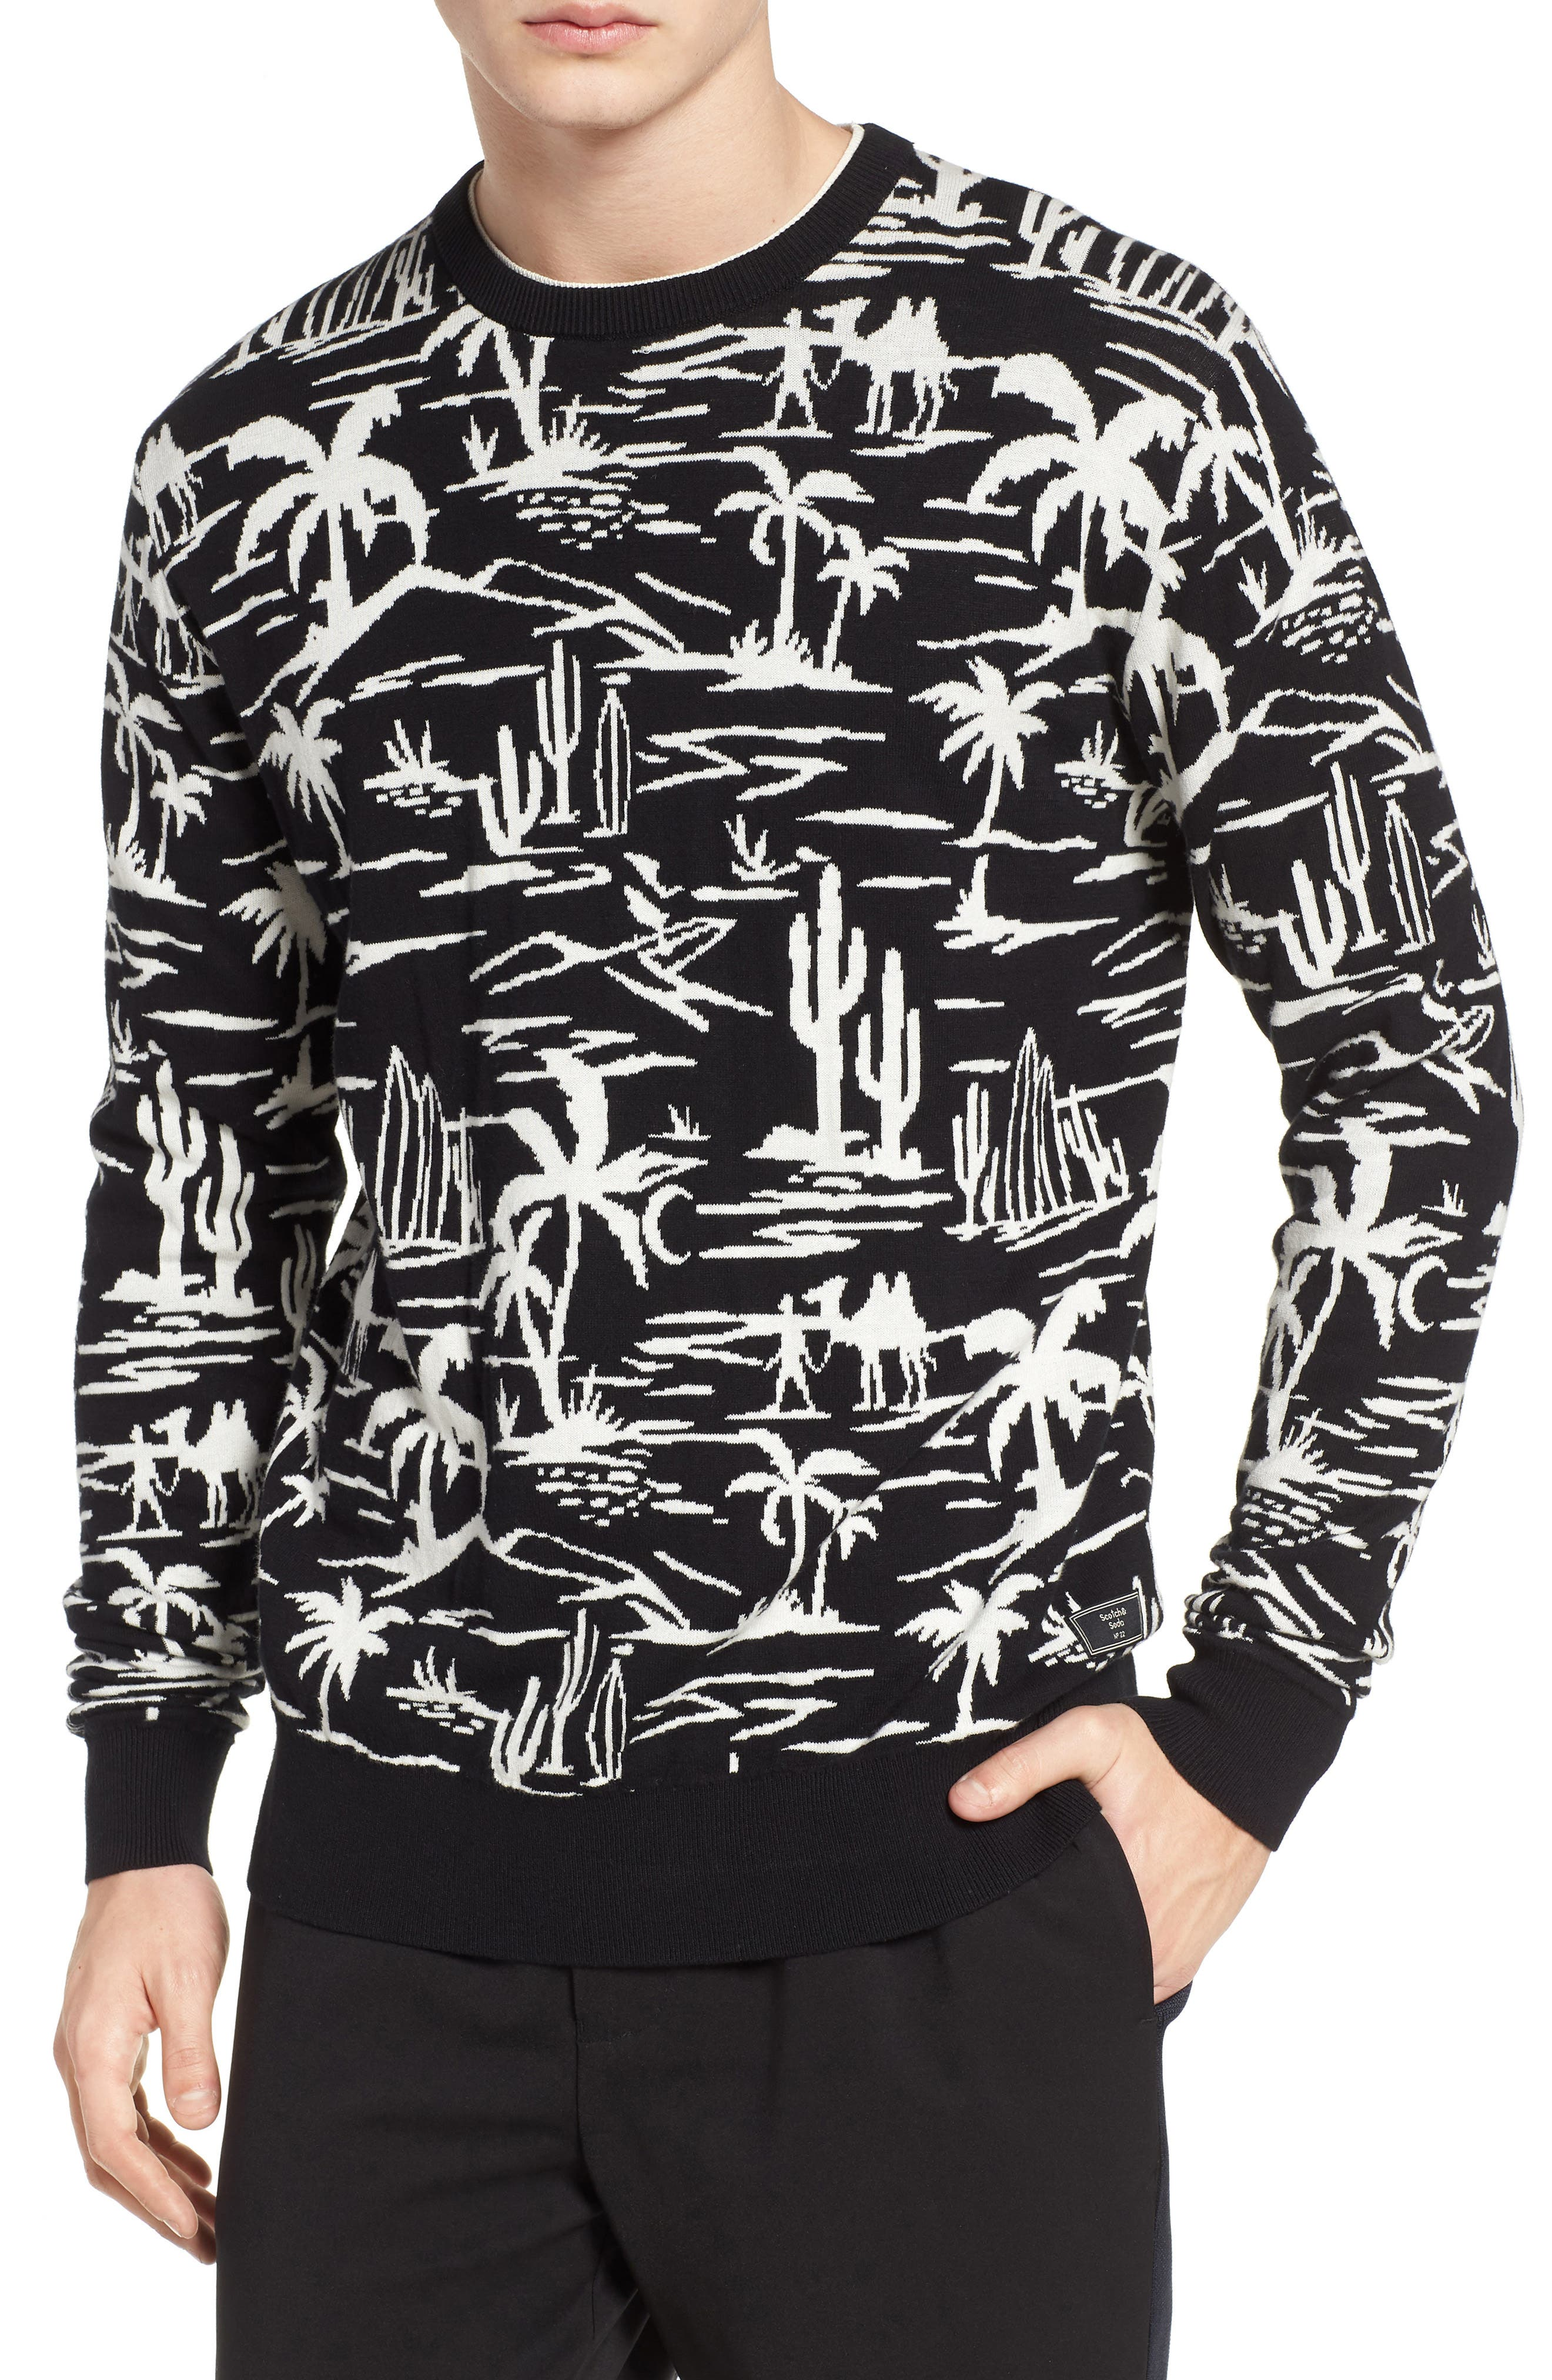 Scotch & Soda Jacquard Pattern Sweatshirt